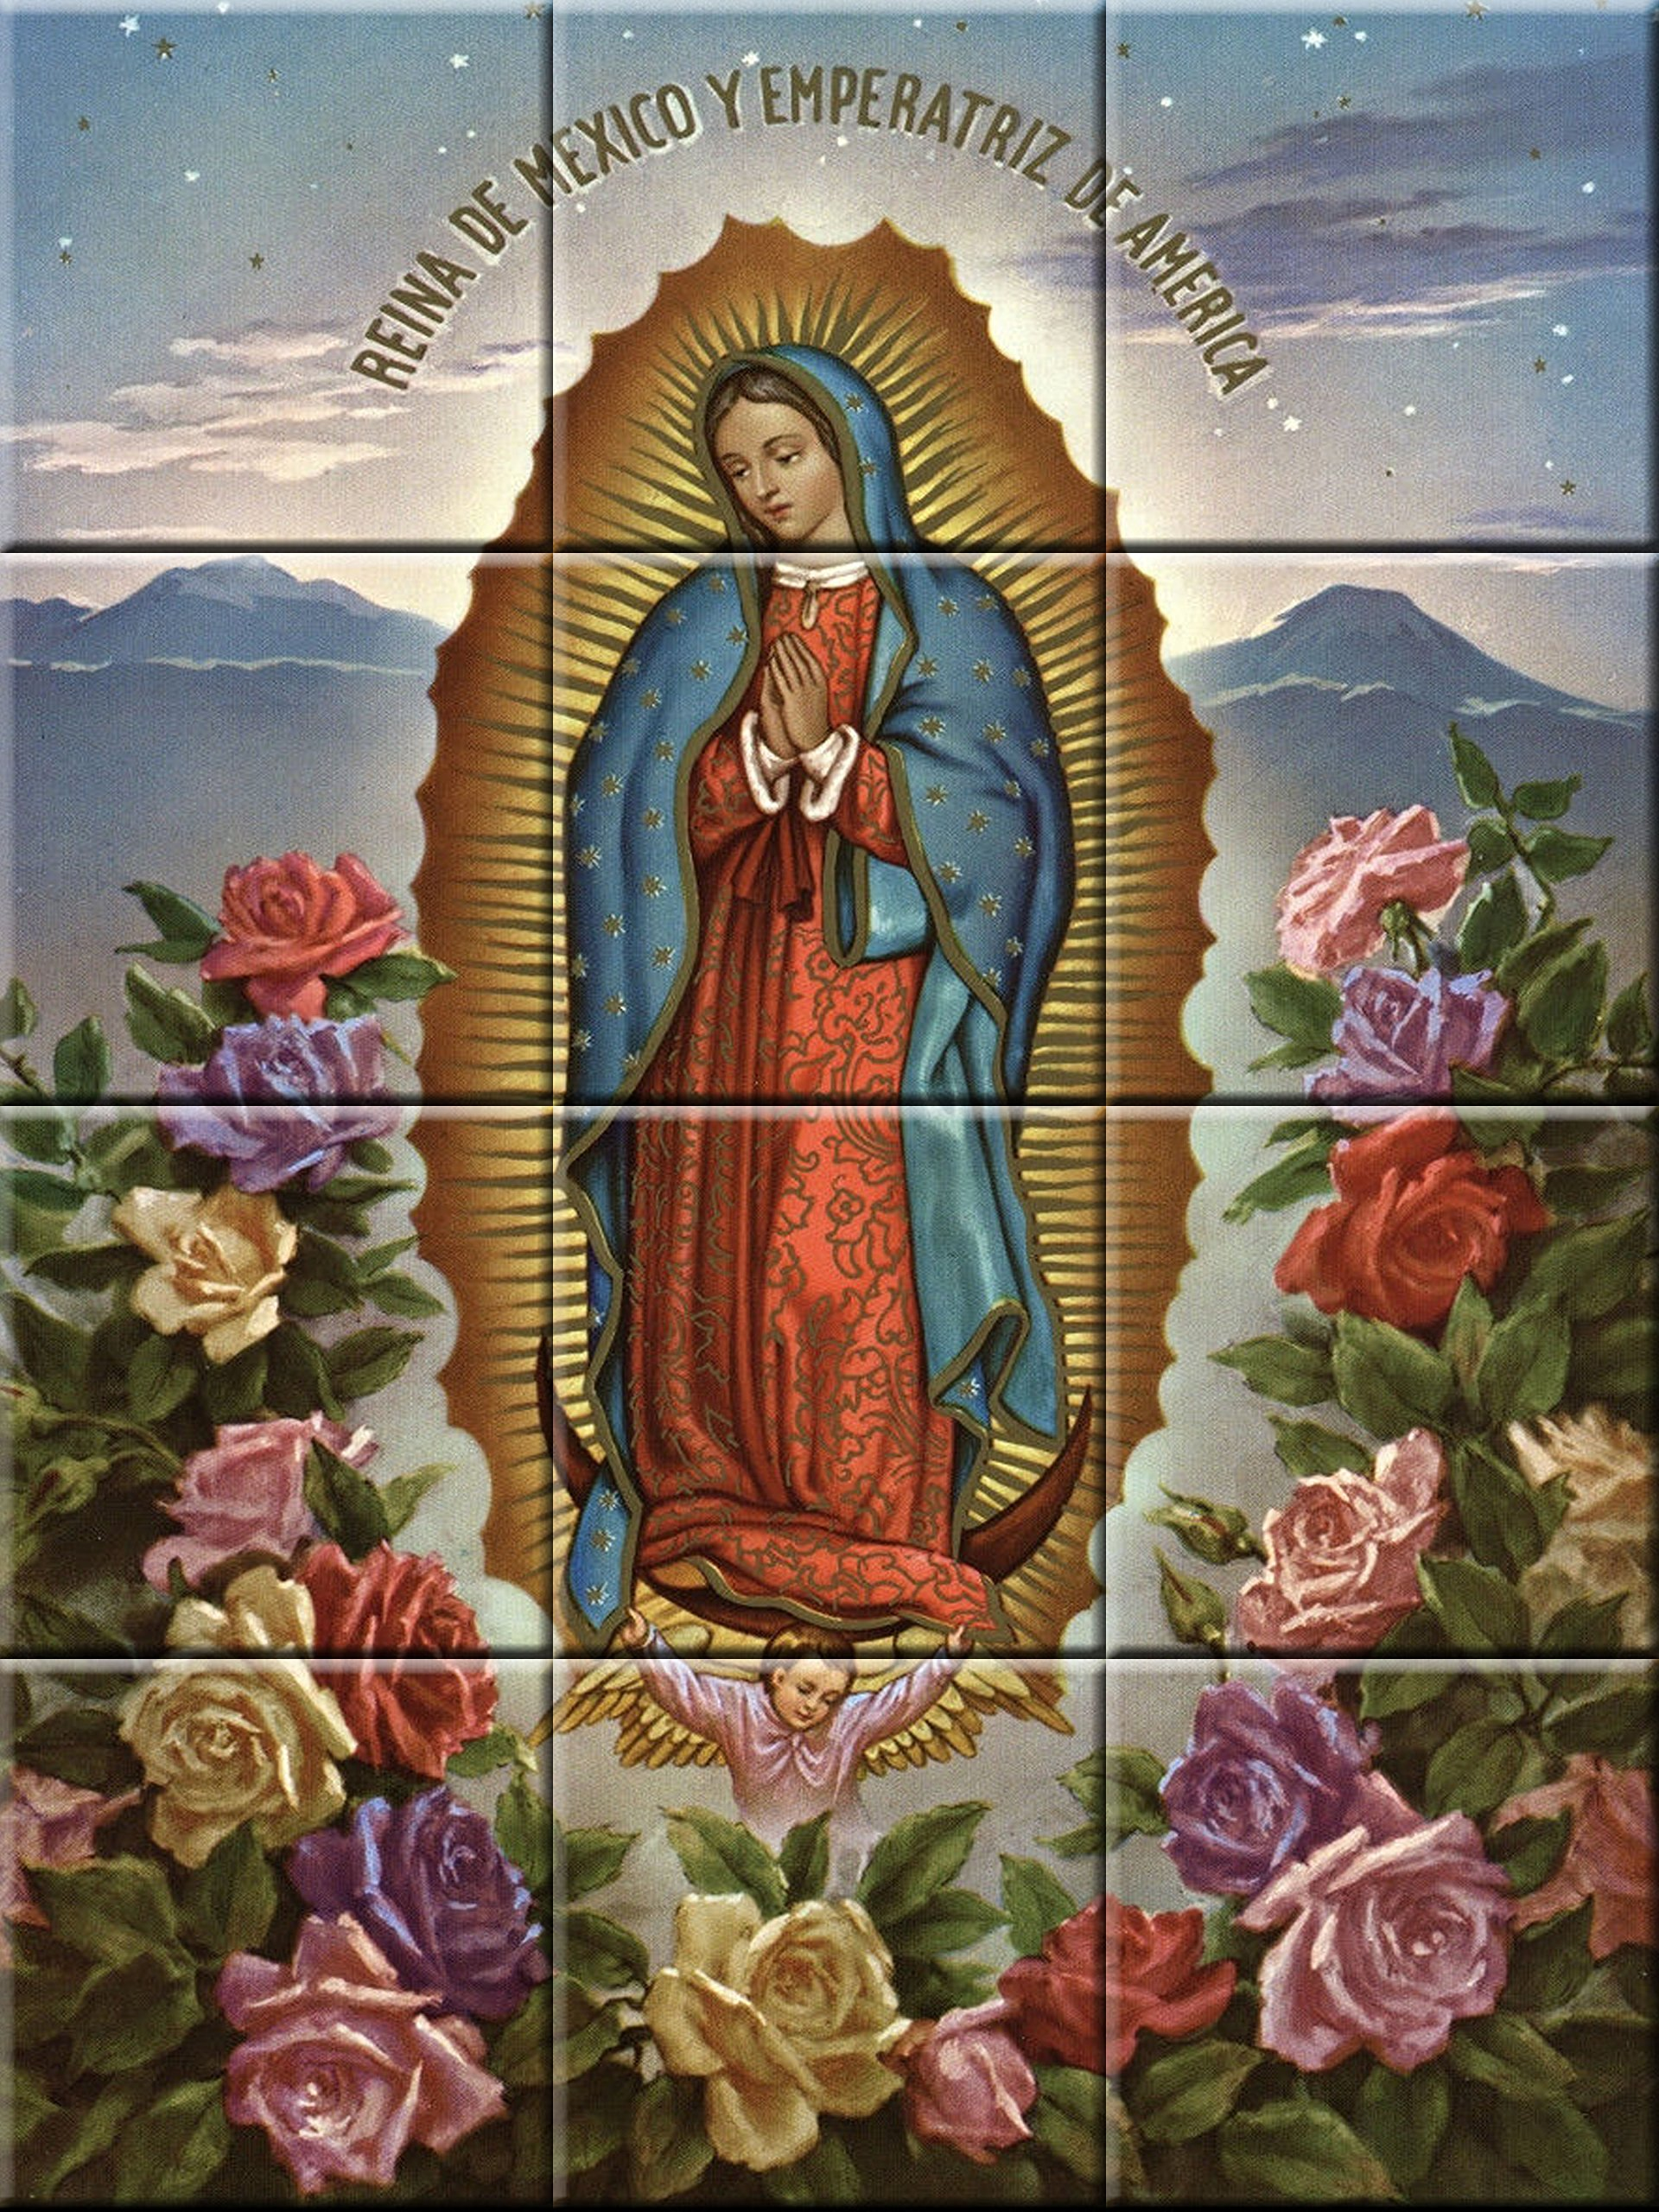 Ceramic tile mural 12.75 X 17 inches reproduction painting Virgin of Guadalupe #2